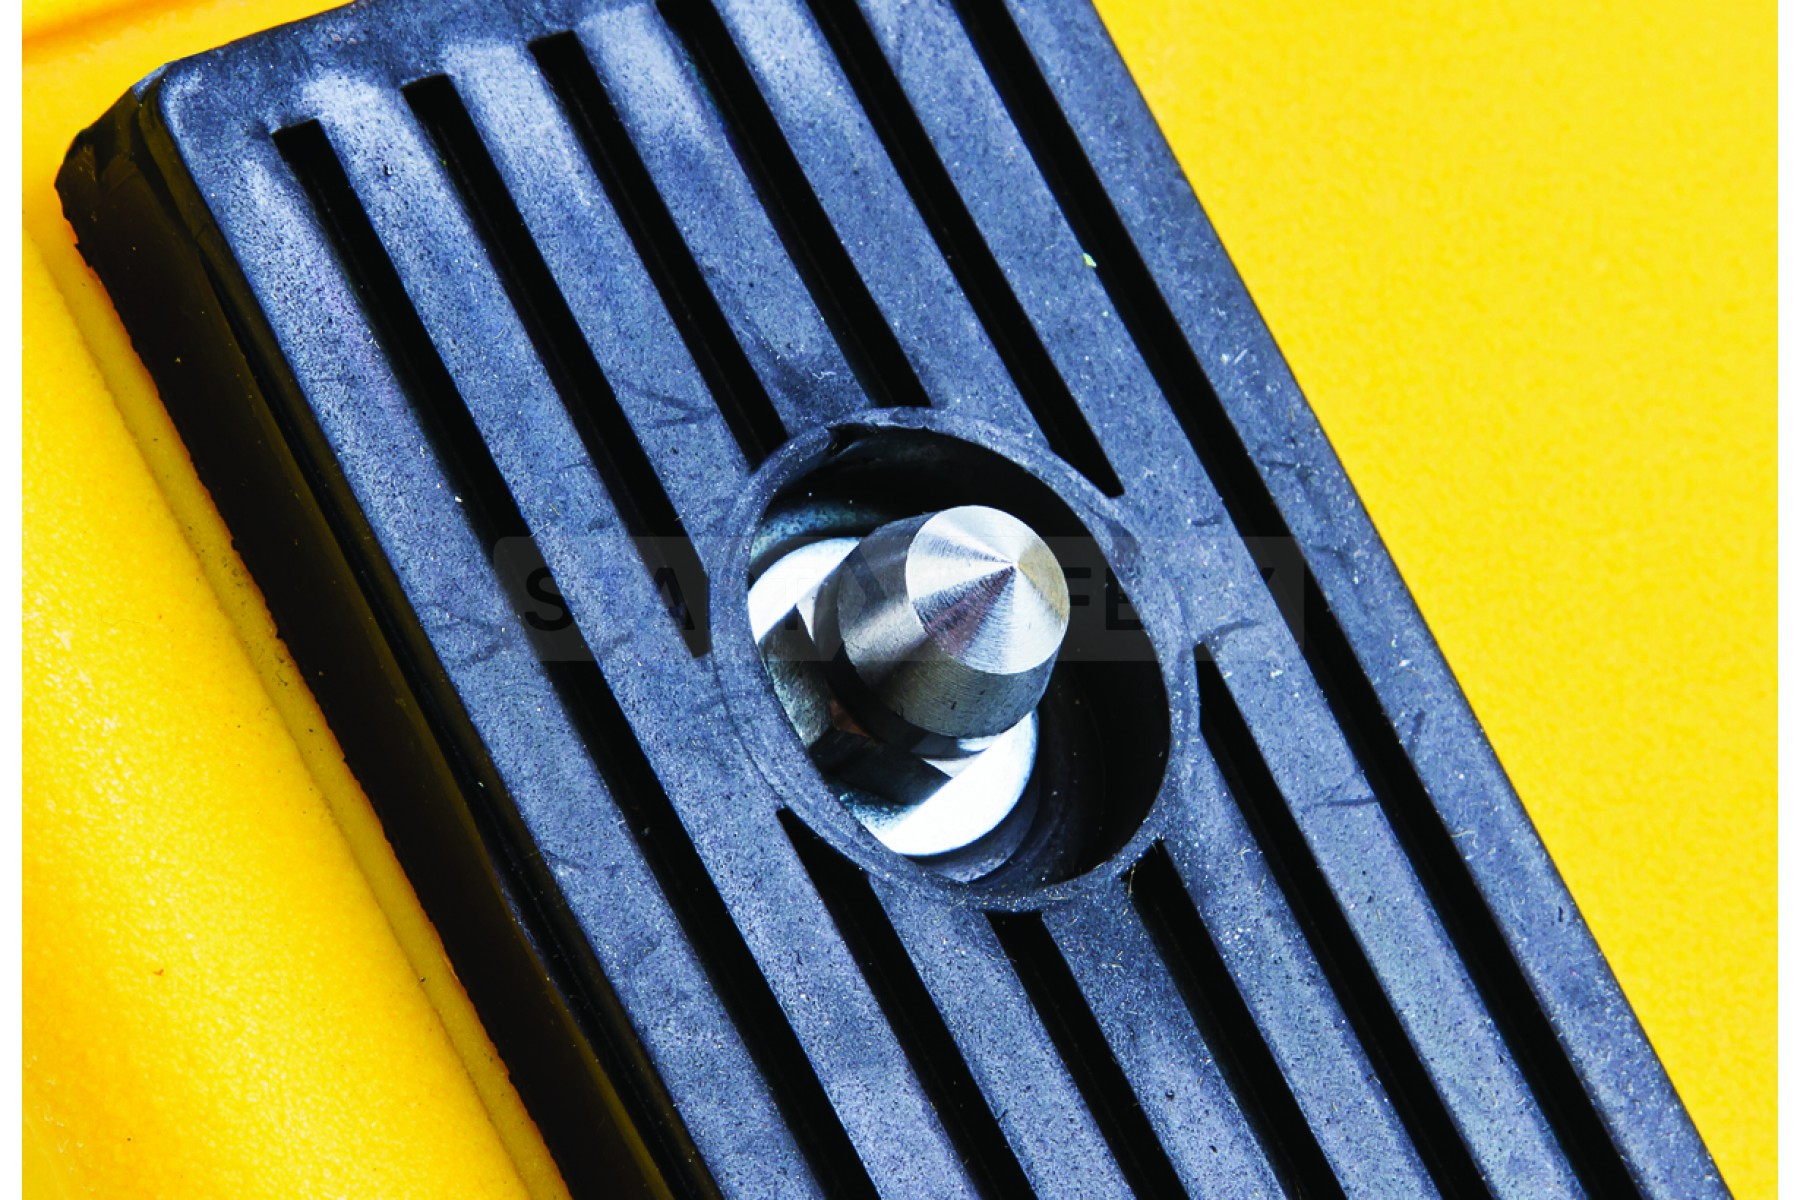 Wheel Chock Snow Amp Ice Studs For Improved Purchase